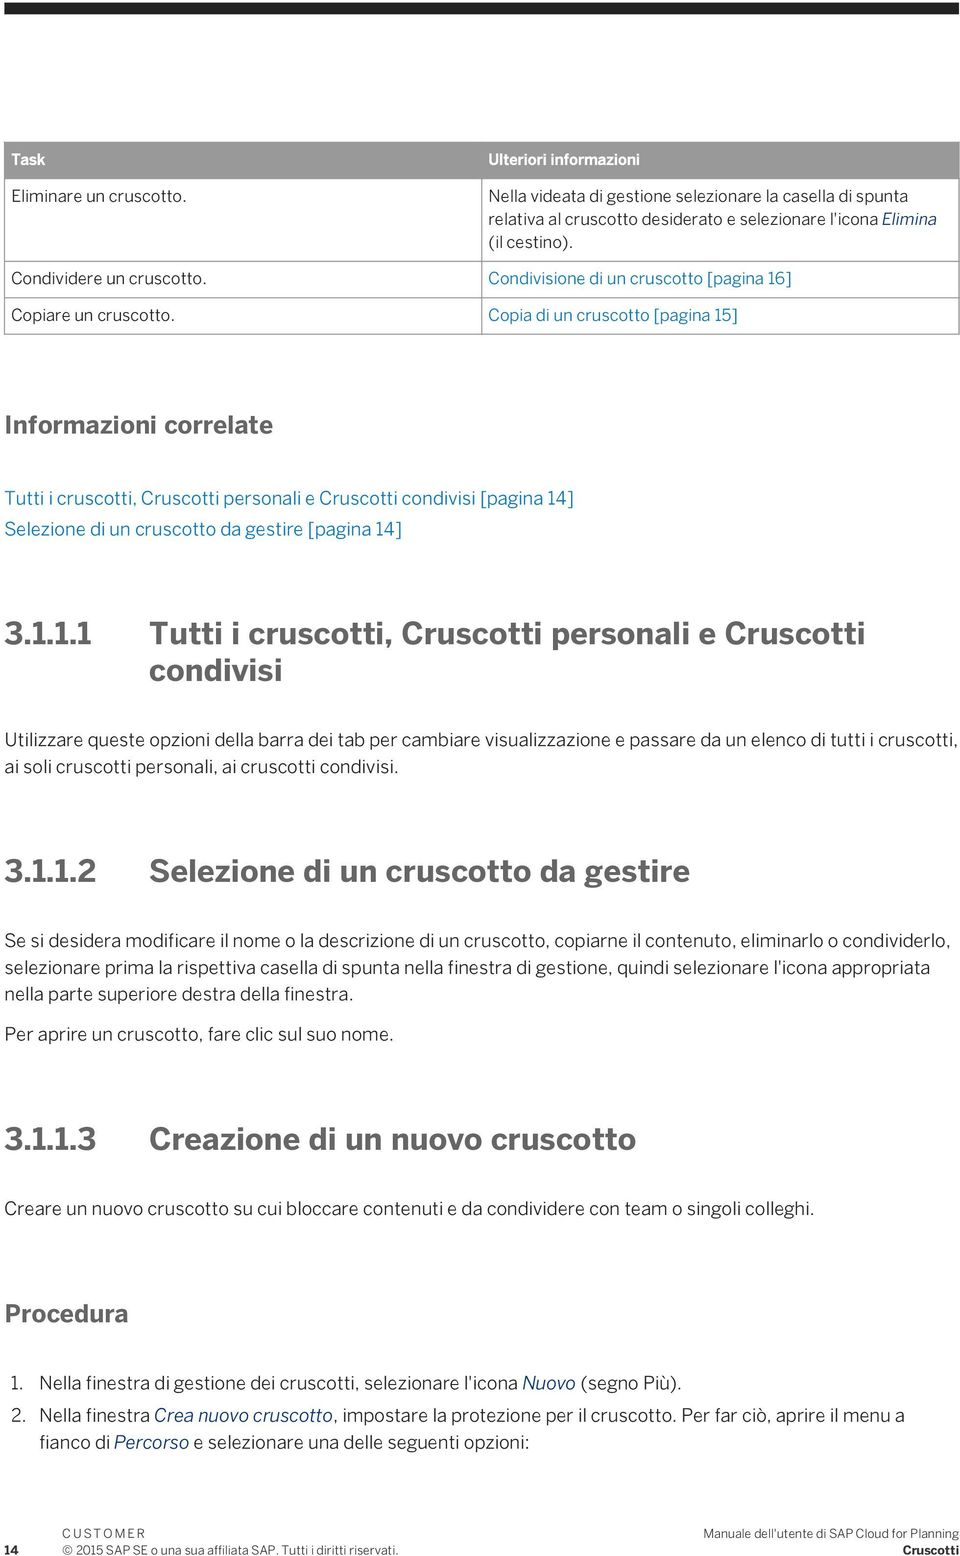 Copia di un cruscotto [pagina 15